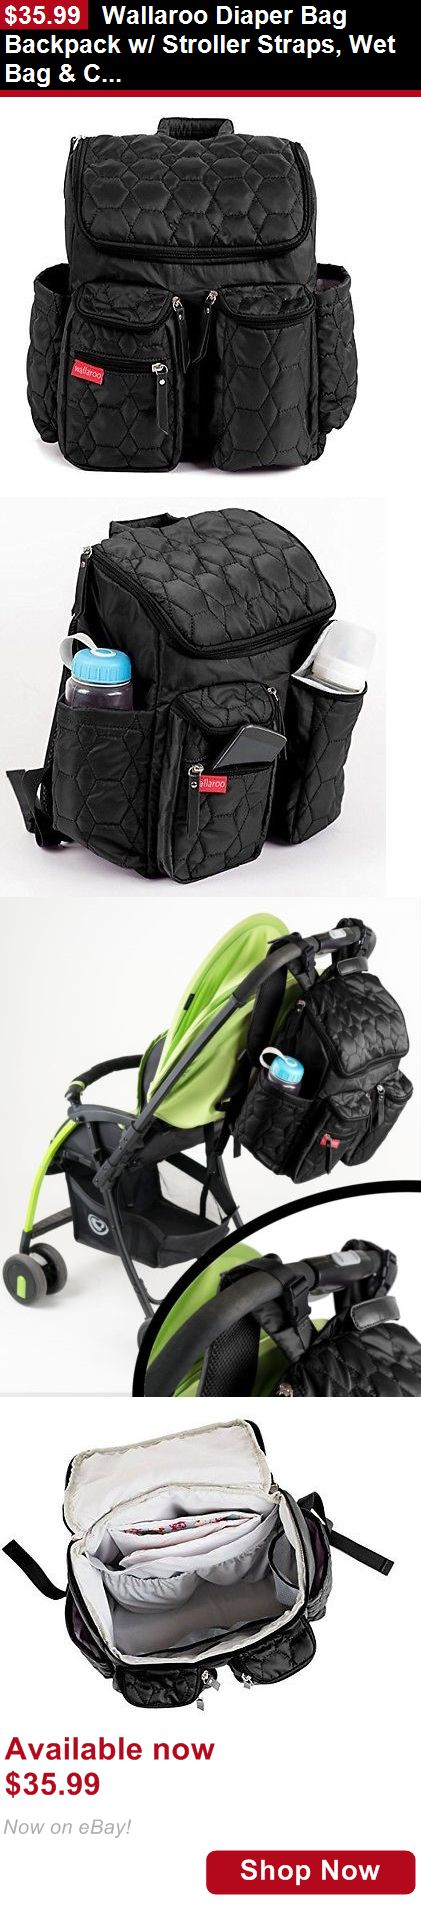 Baby Diaper Bags: Wallaroo Diaper Bag Backpack W/ Stroller Straps, Wet Bag And Changing Pad BUY IT NOW ONLY: $35.99